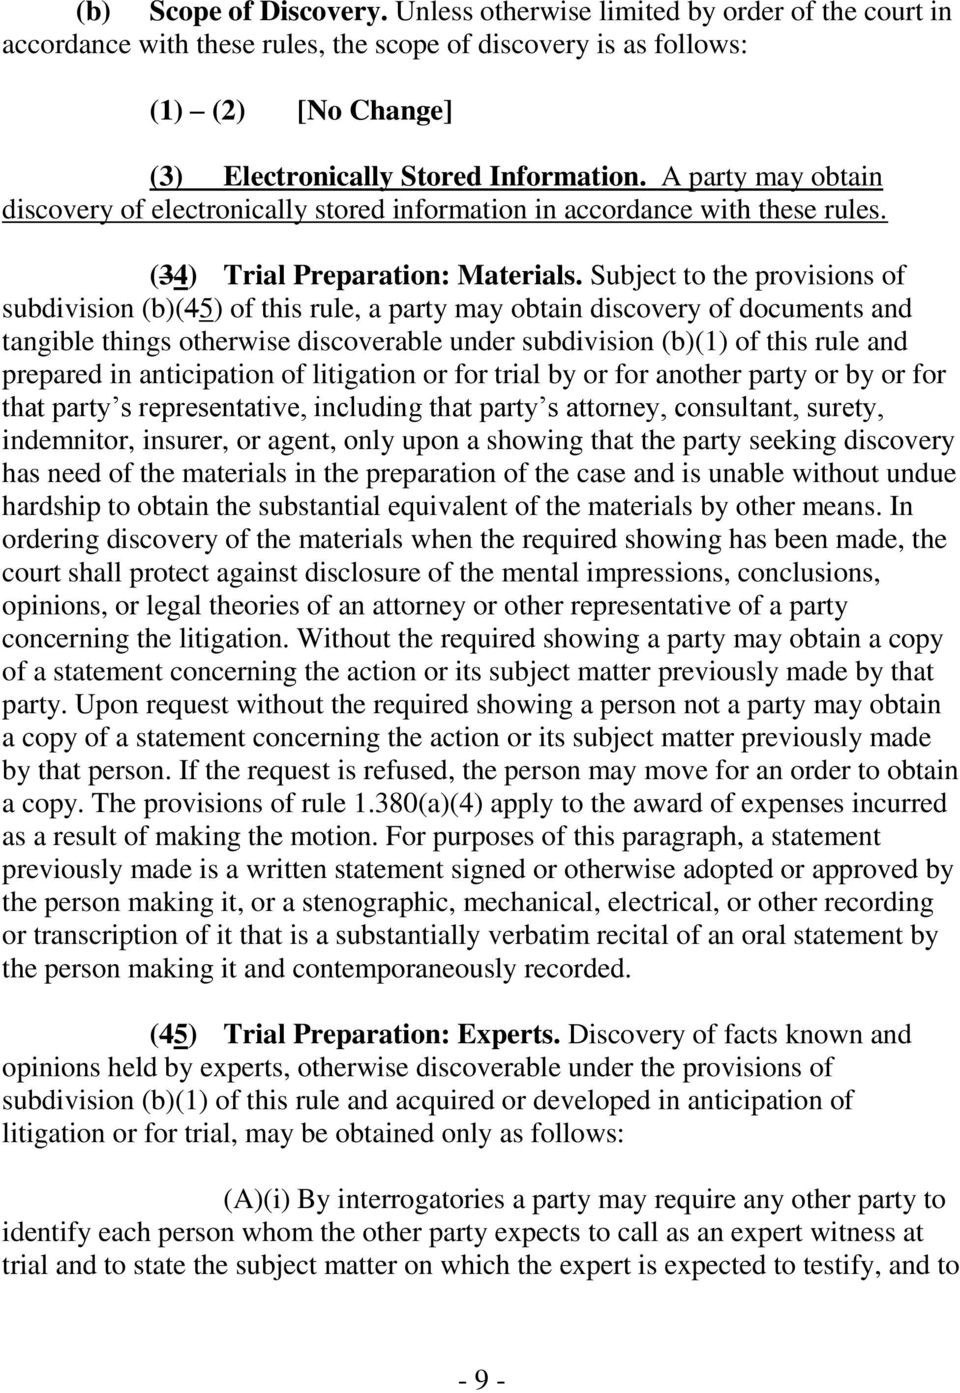 Subject to the provisions of subdivision (b)(45) of this rule, a party may obtain discovery of documents and tangible things otherwise discoverable under subdivision (b)(1) of this rule and prepared